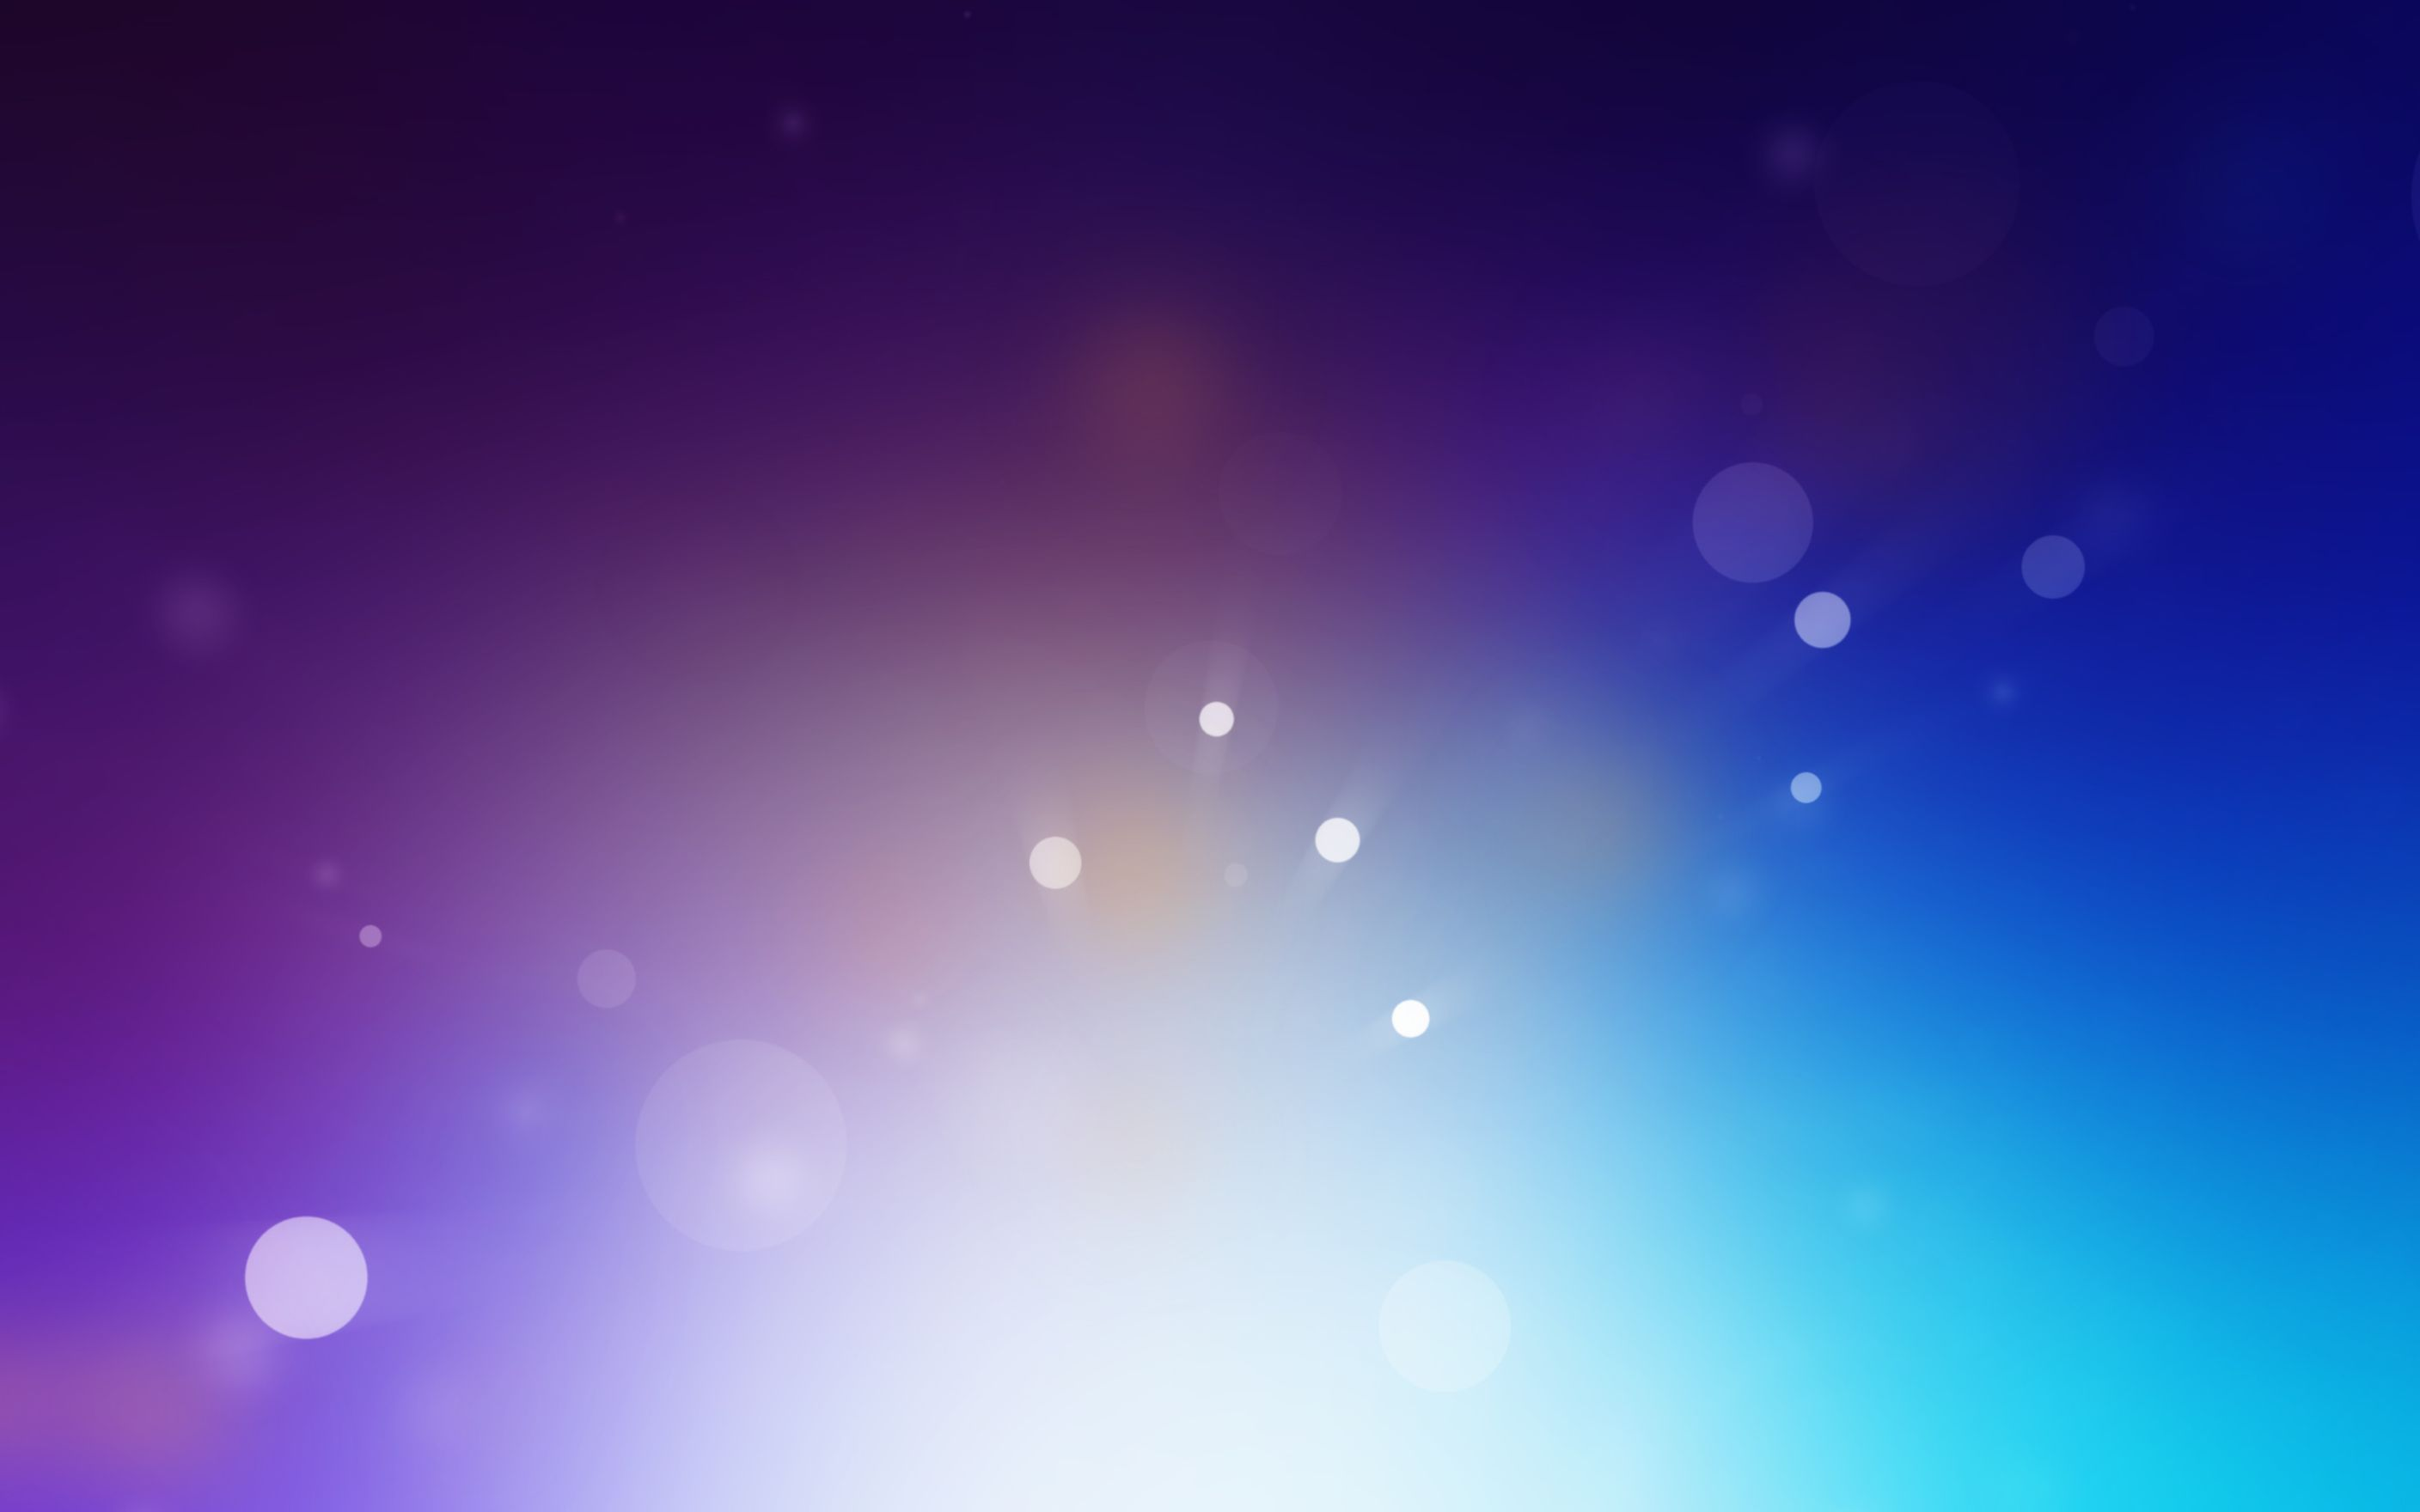 Download free HD Blurry Abstract Wide Wallpaper, image